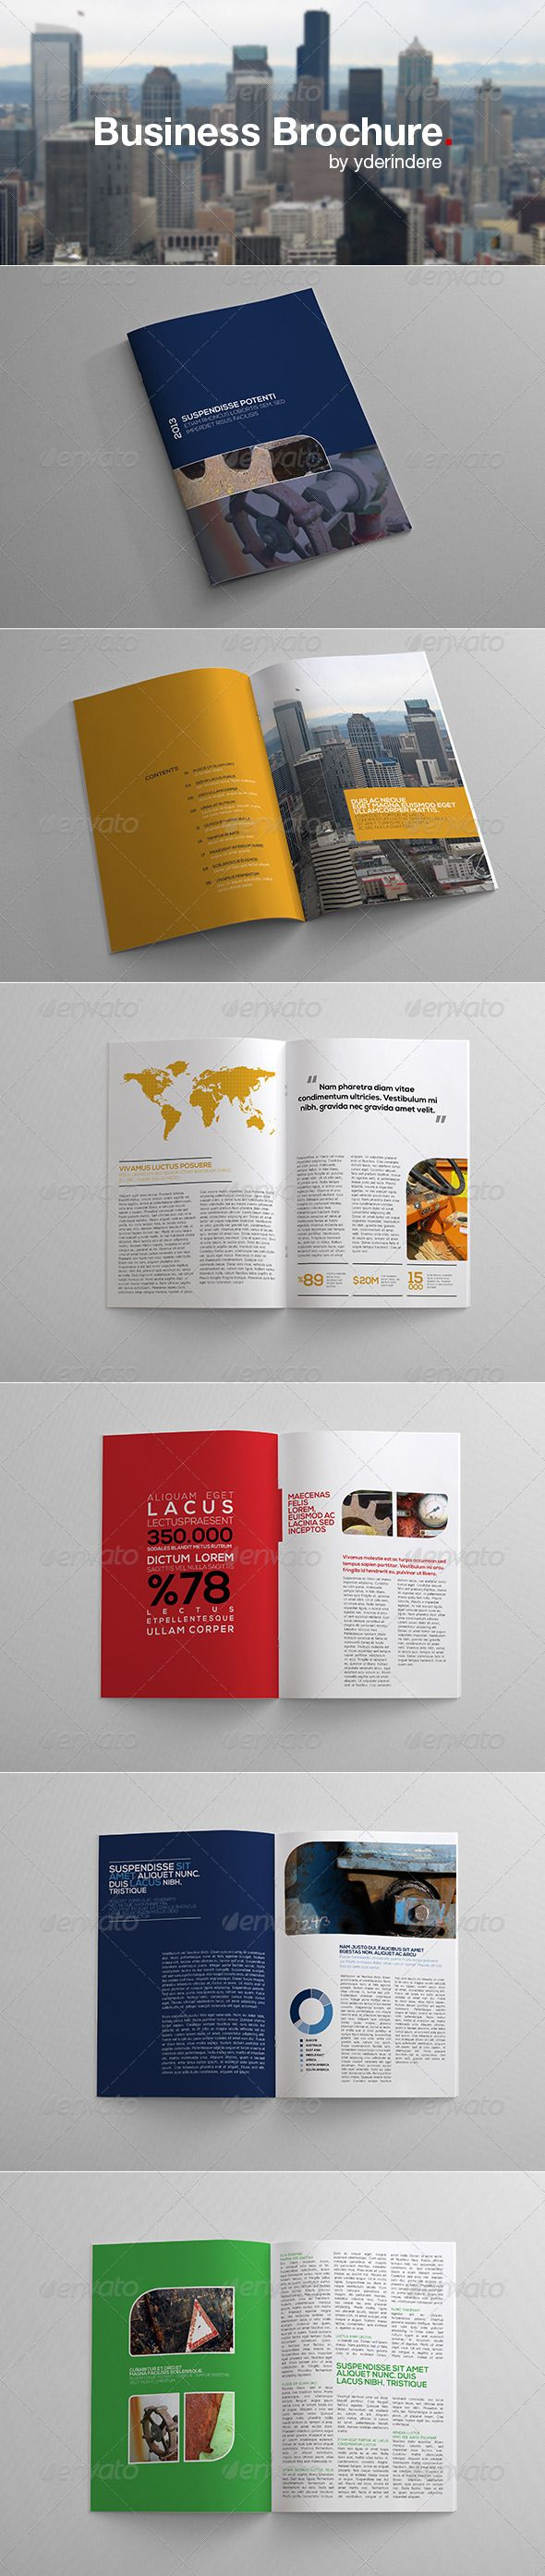 Business Brochure #GraphicRiver Business Brochure Modern brochure template for general purpose. A4 Size 12 Pages 300 DPI & CMYK Easy edit Print Ready Vector map included. All images and fonts are free and download information in help file. Please rate if you like it. Created: 5October12 GraphicsFilesIncluded: VectorEPS #InDesignINDD Layered: Yes MinimumAdobeCSVersion: CS4 PrintDimensions: 210x297 Tags: annual #blue #brochure #business #clean #colorful #company #corporate #editable #elegant